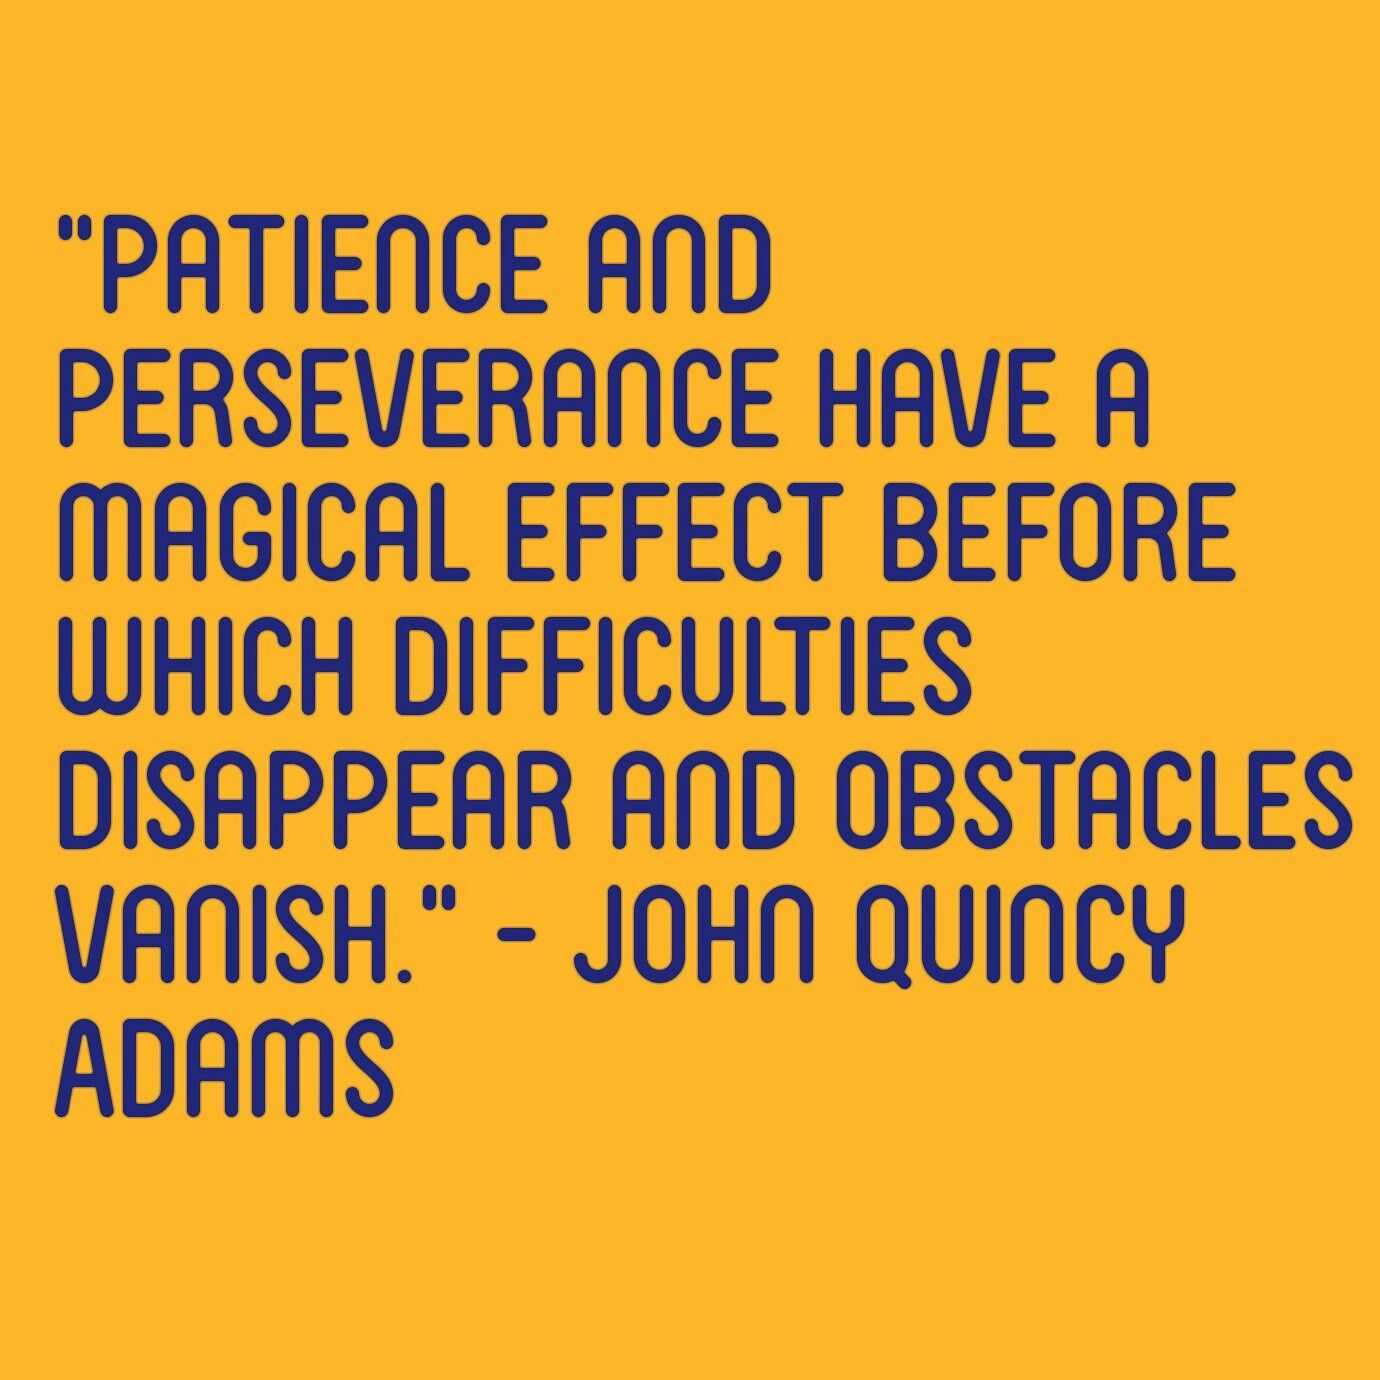 #happymonday #happythoughts  #motivationalquotes #motivation #johnquincyadams